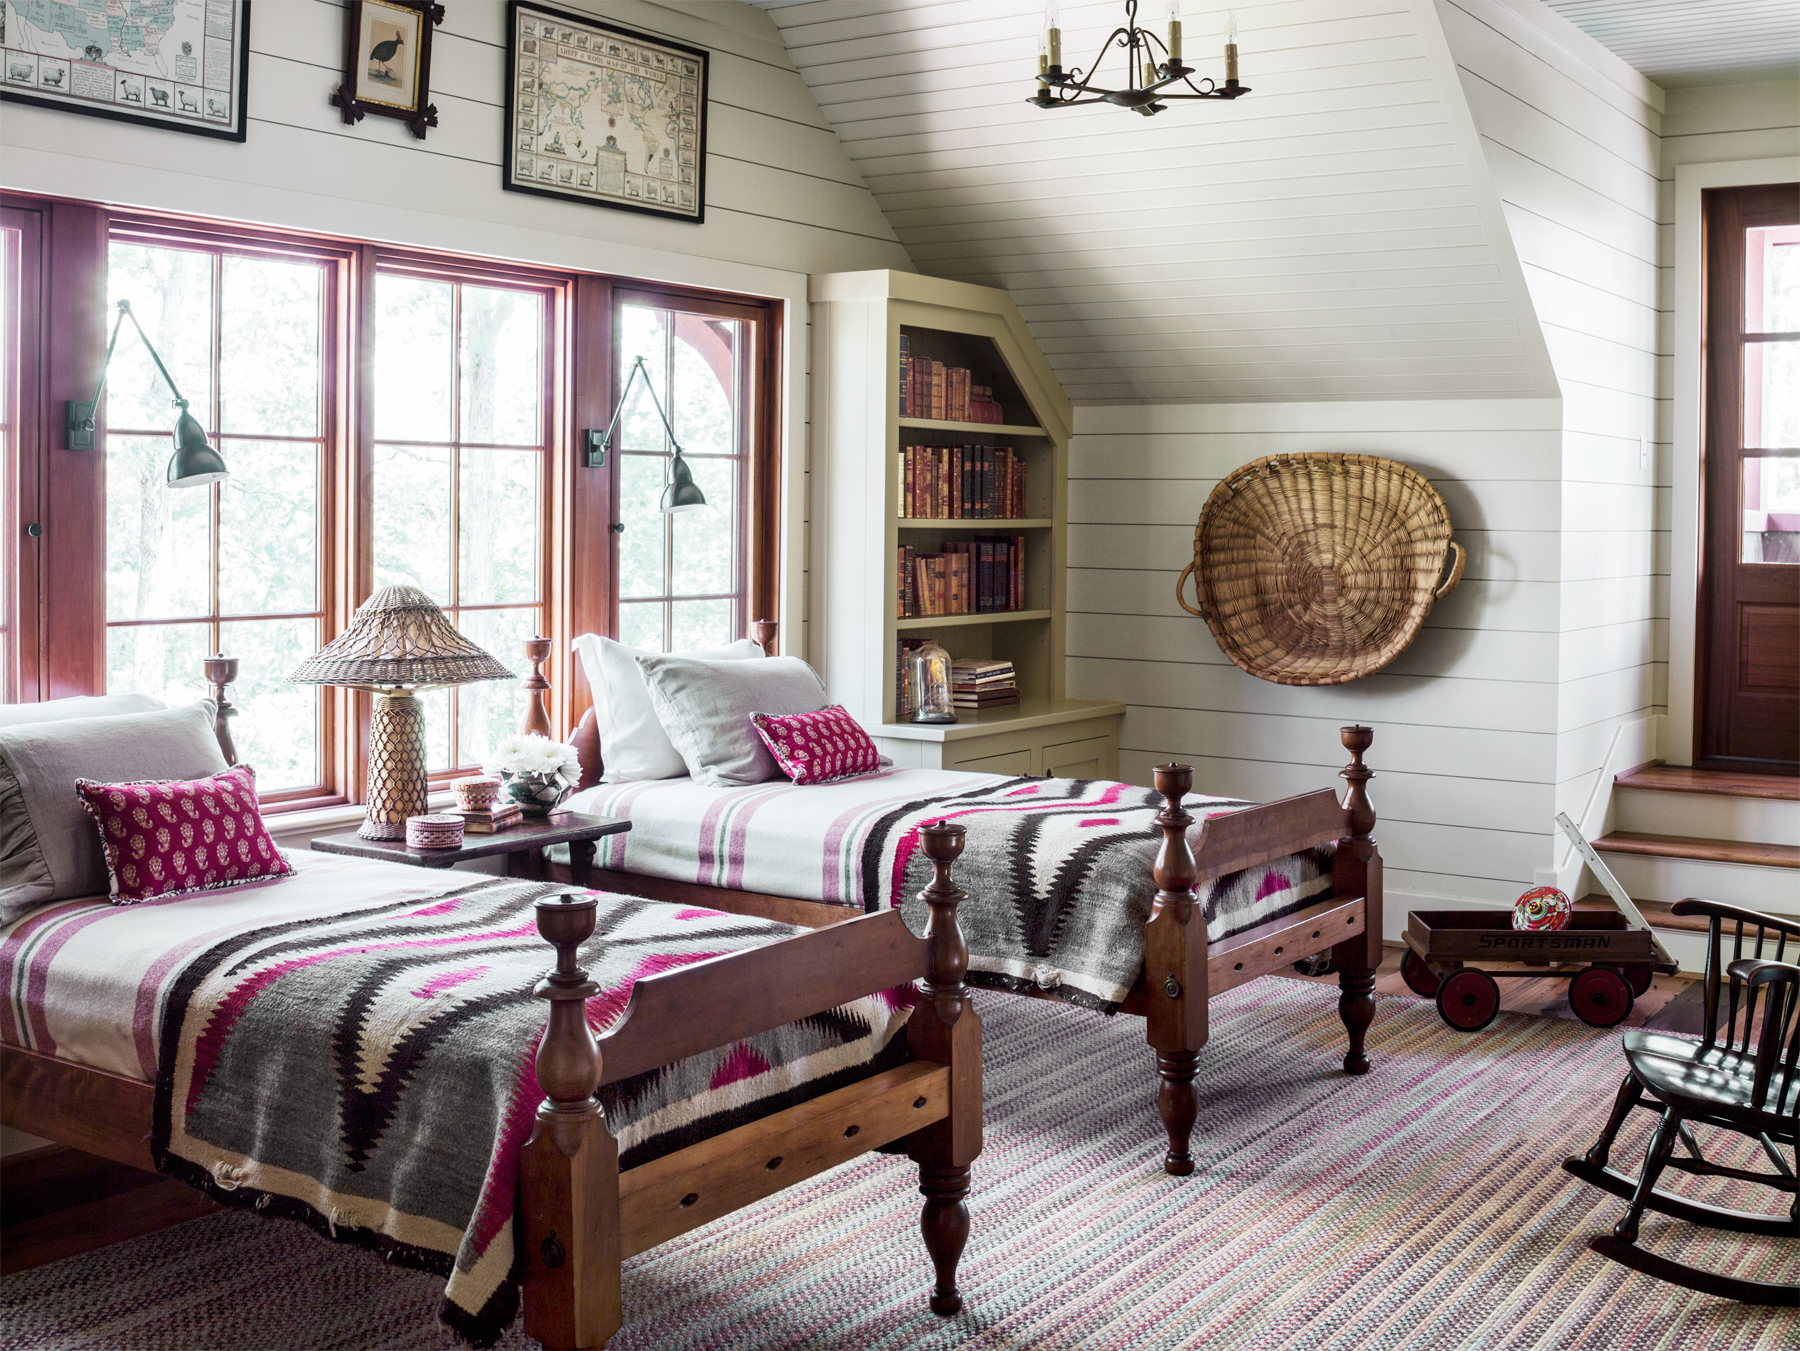 South carolina lake house cabin rustic and timeless cabin decorating ideas Lake house decorating ideas bedroom